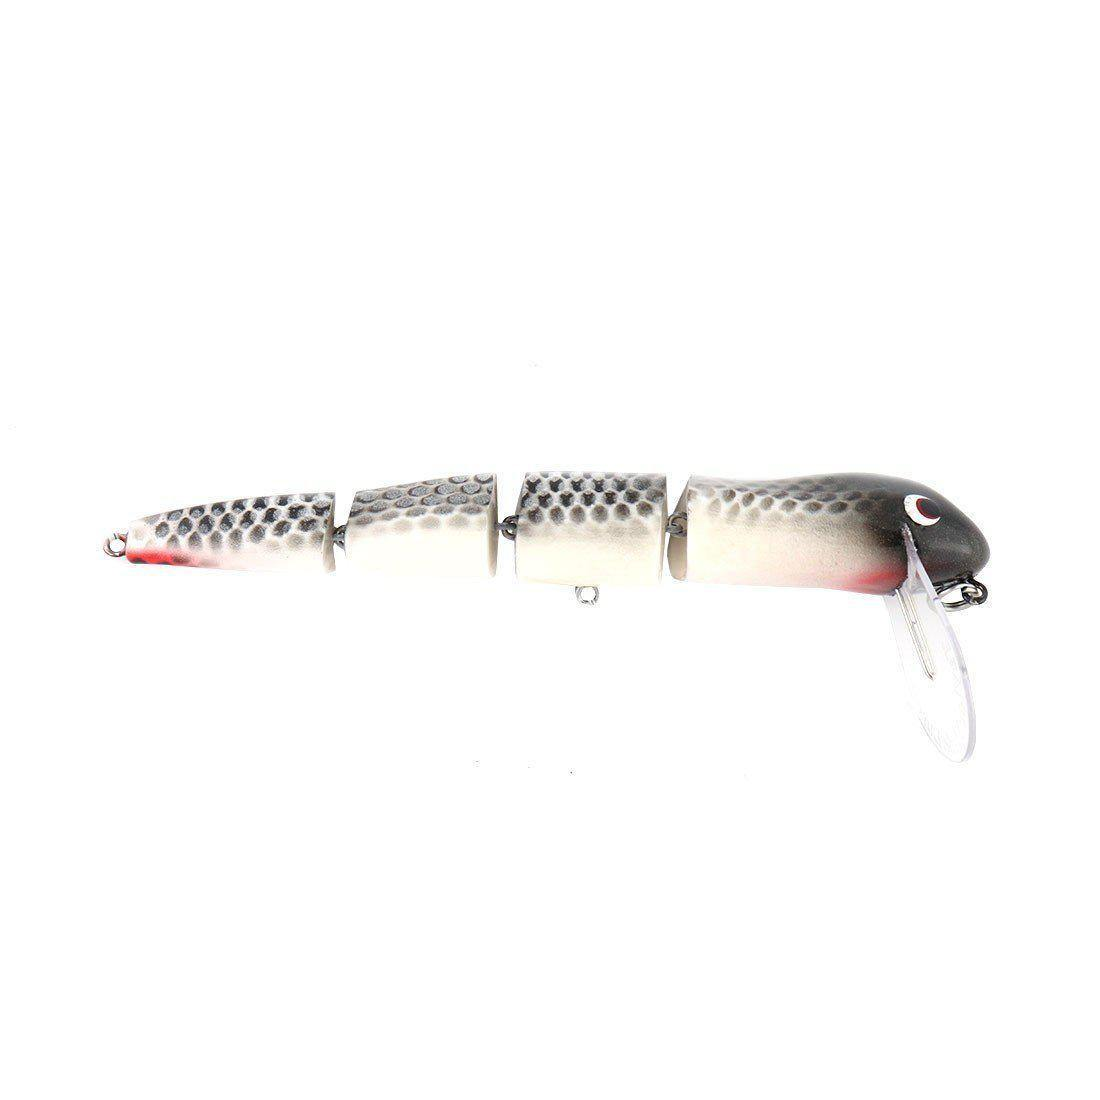 Taylor Made Rattling Reptile Surface Lure